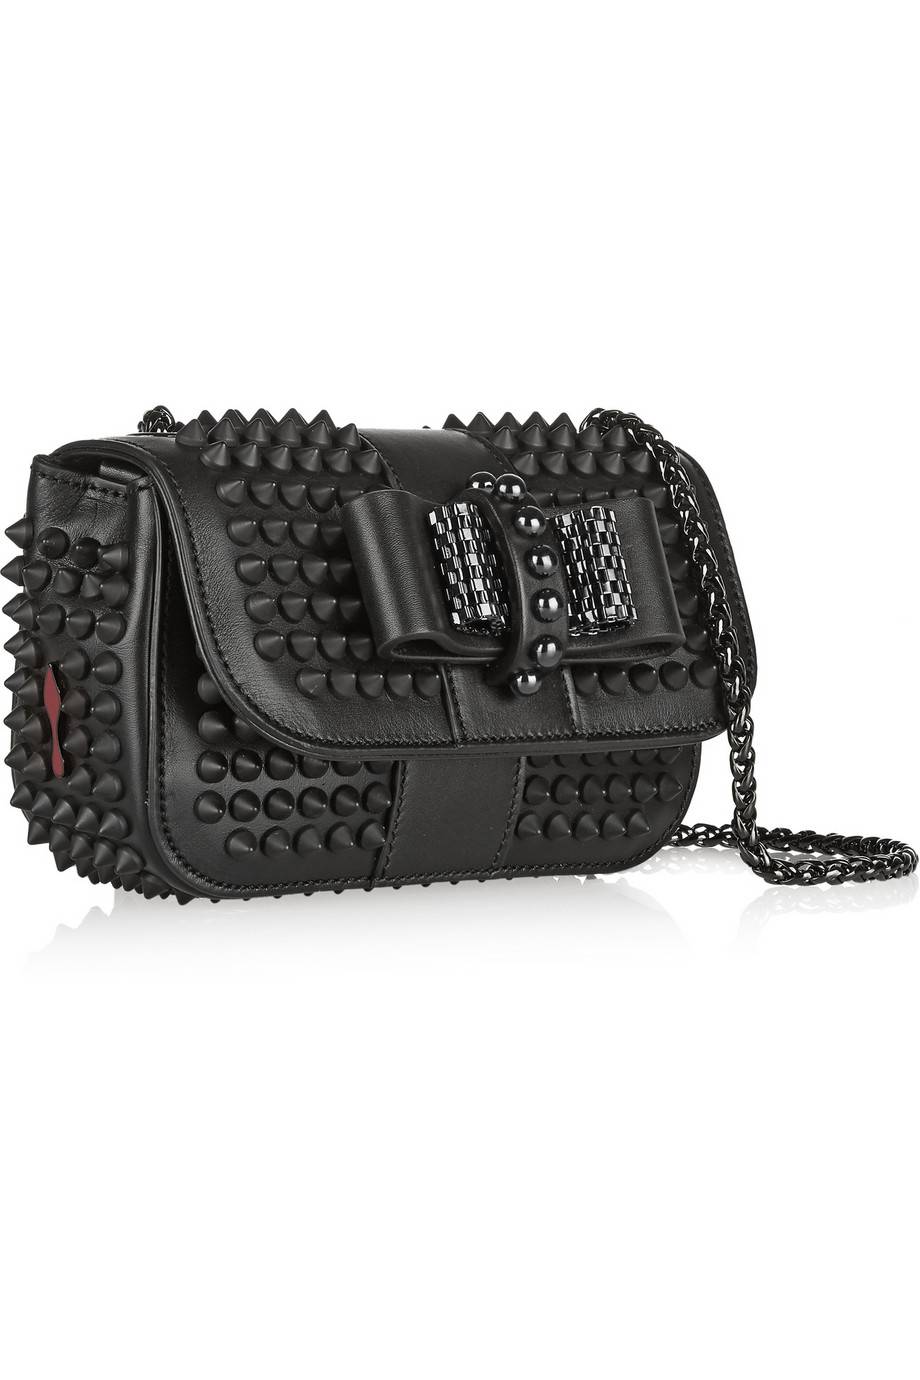 Christian Louboutin Sweety Charity Mini Spiked Leather